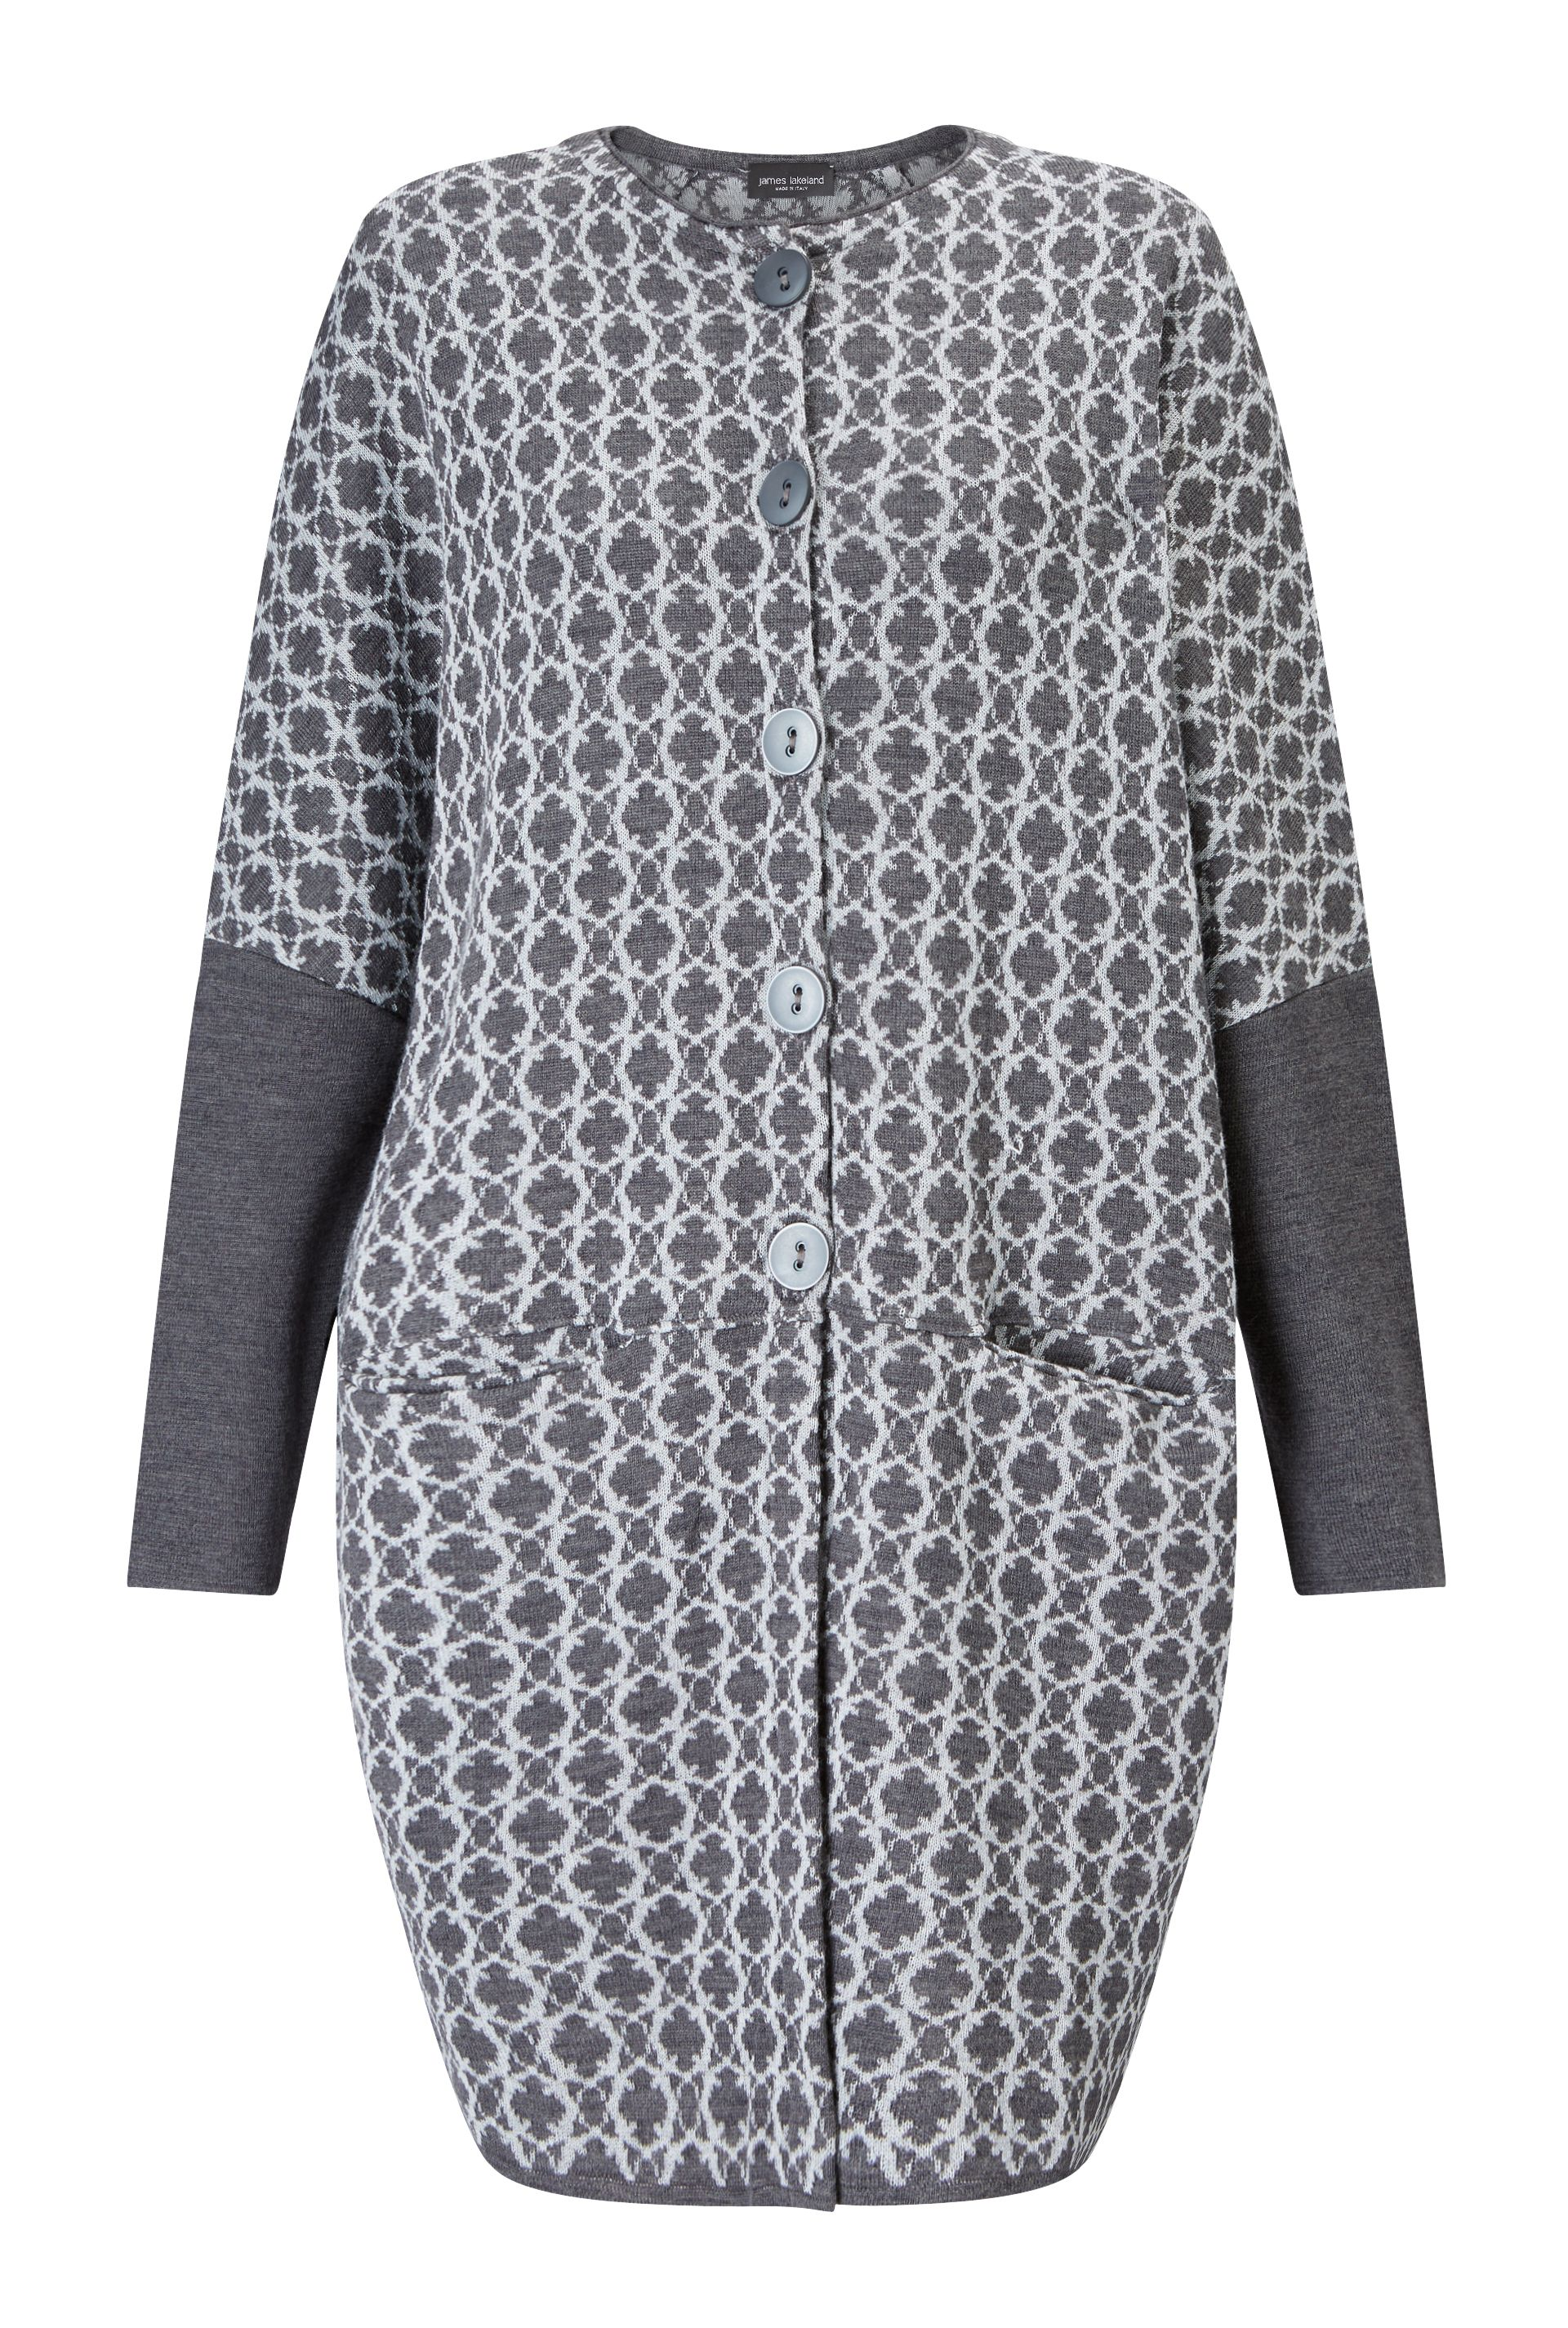 James Lakeland Knitted Jacquard Coat, Grey